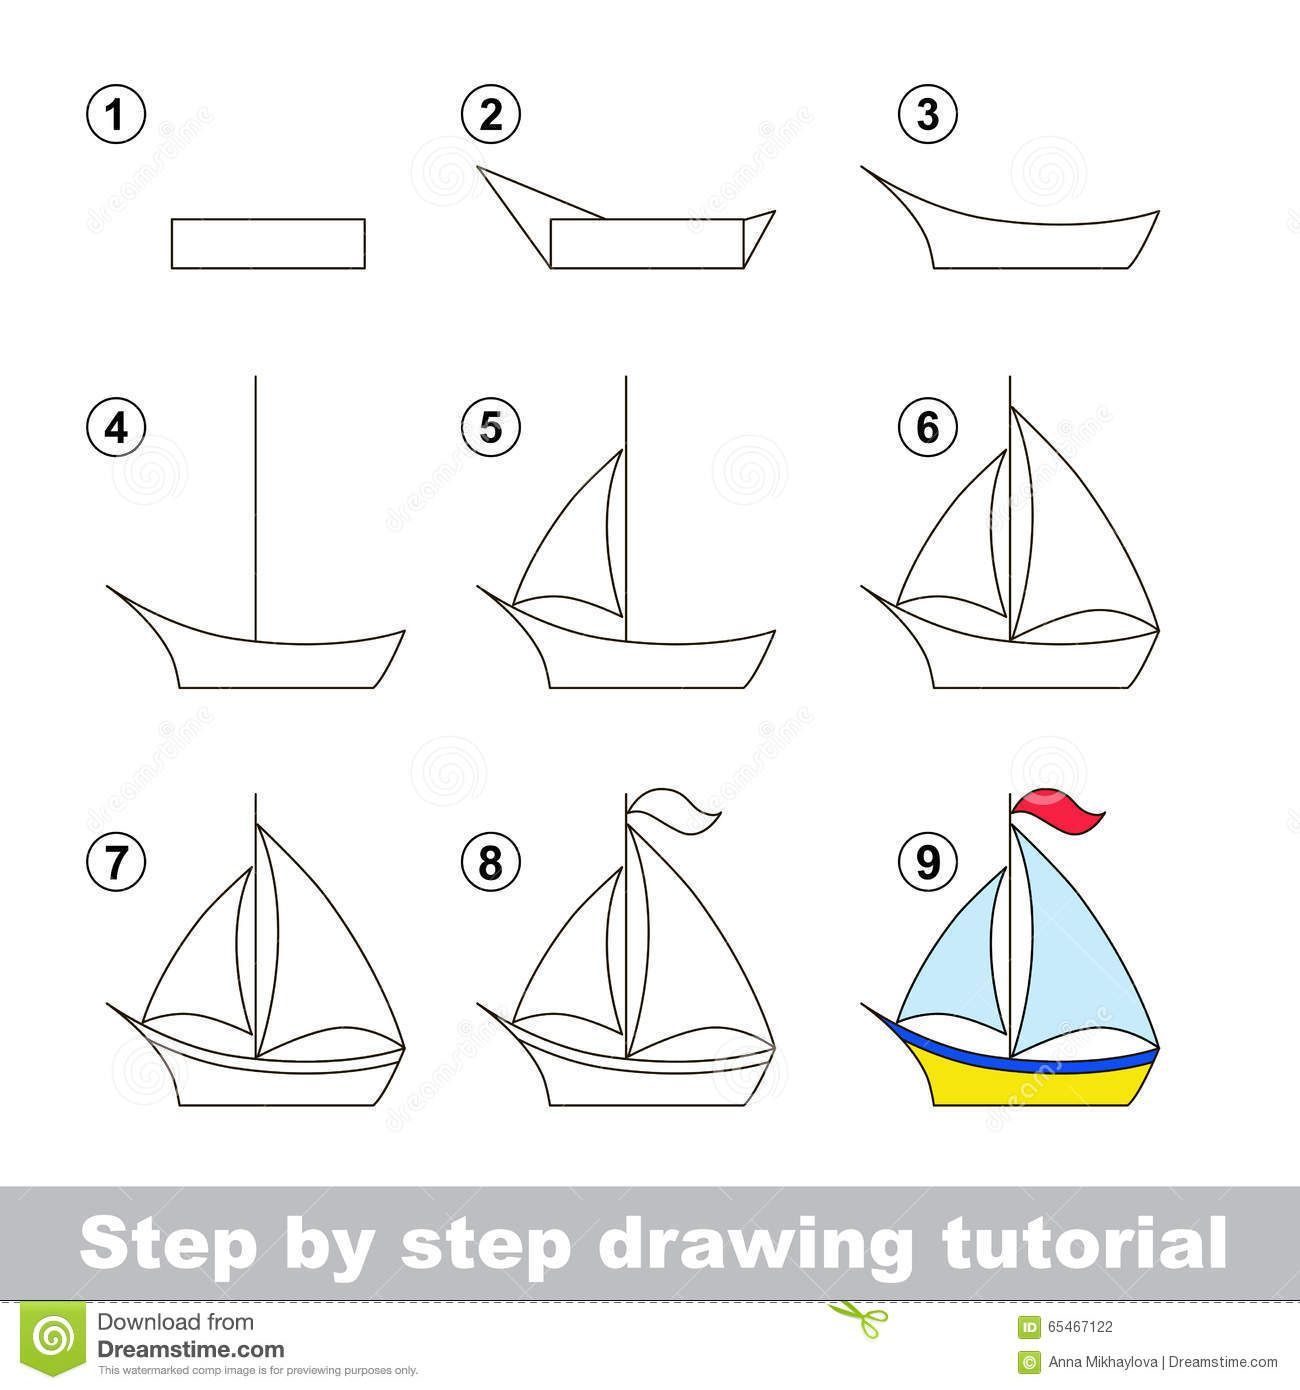 png free stock Boats drawing step by. Tutorial how to draw